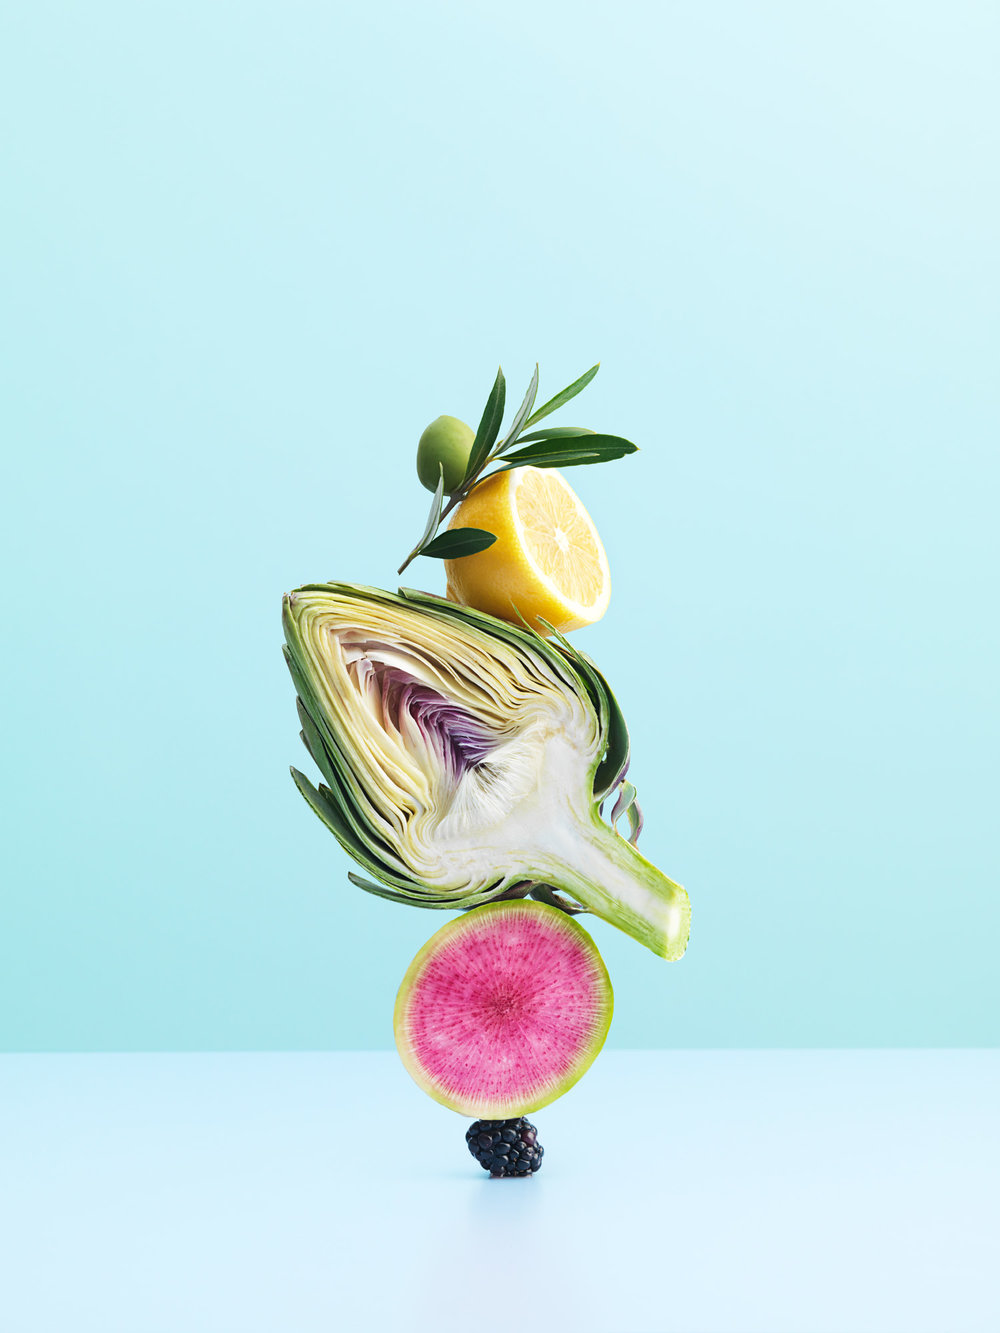 WaitroseHealth_Cover_16.3.18 - 059.jpg